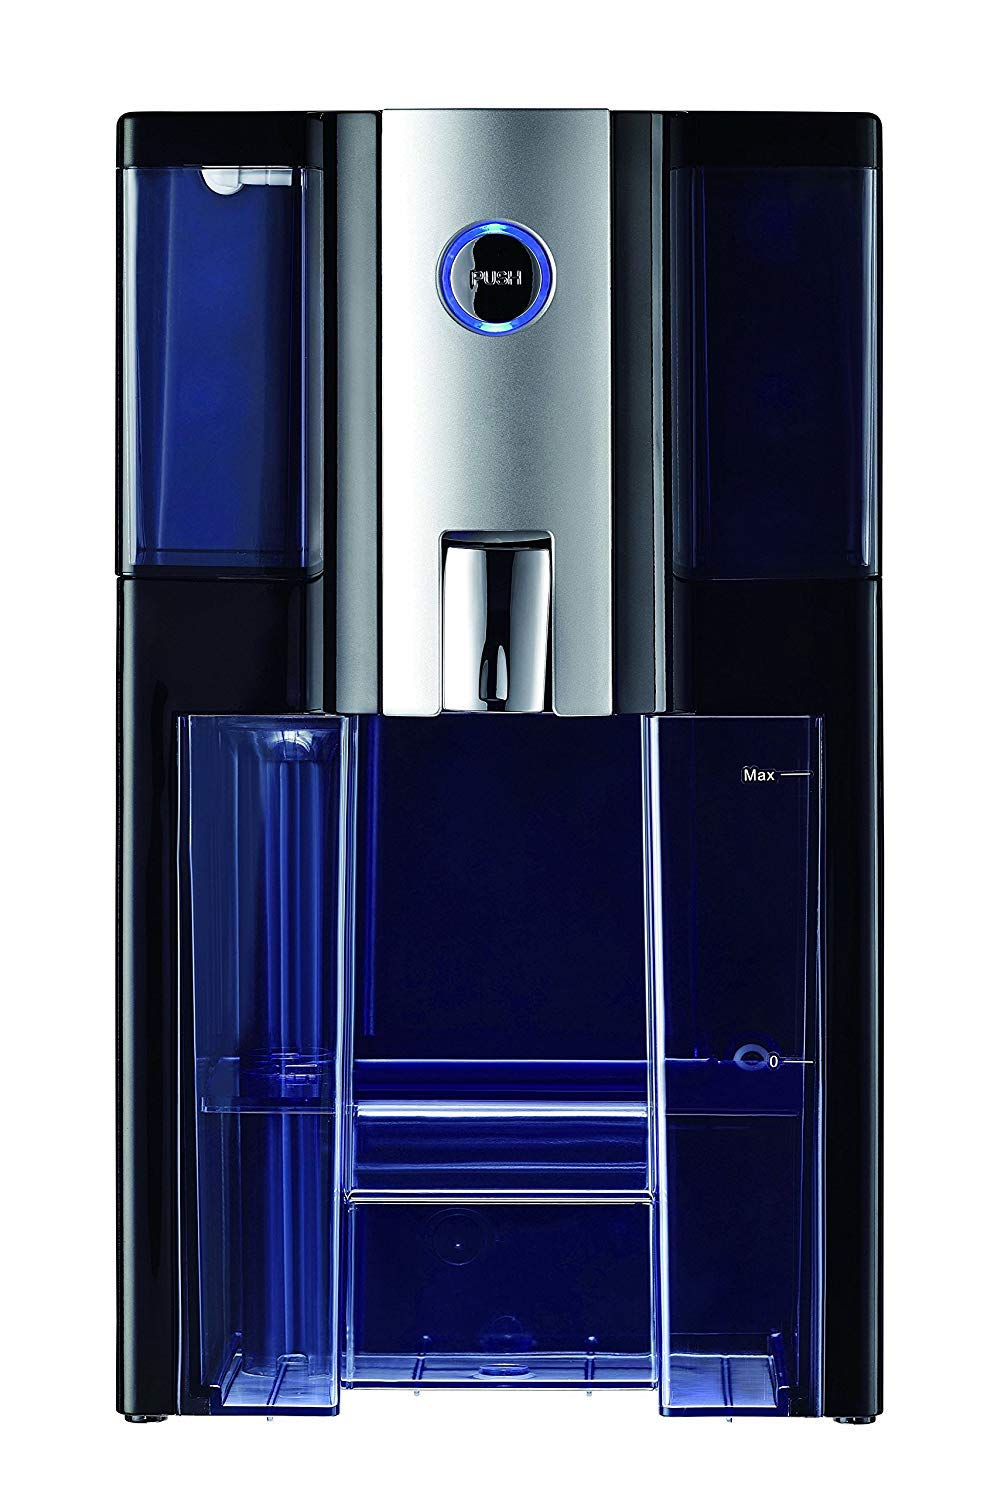 Zero Installation Purifier Countertop Reverse Osmosis Water Filter with Patented High Capacity 4 Stage Technology - Superior Taste, Purity, and Alkaline pH | No Installation or Assembly Required by PuricomUSA